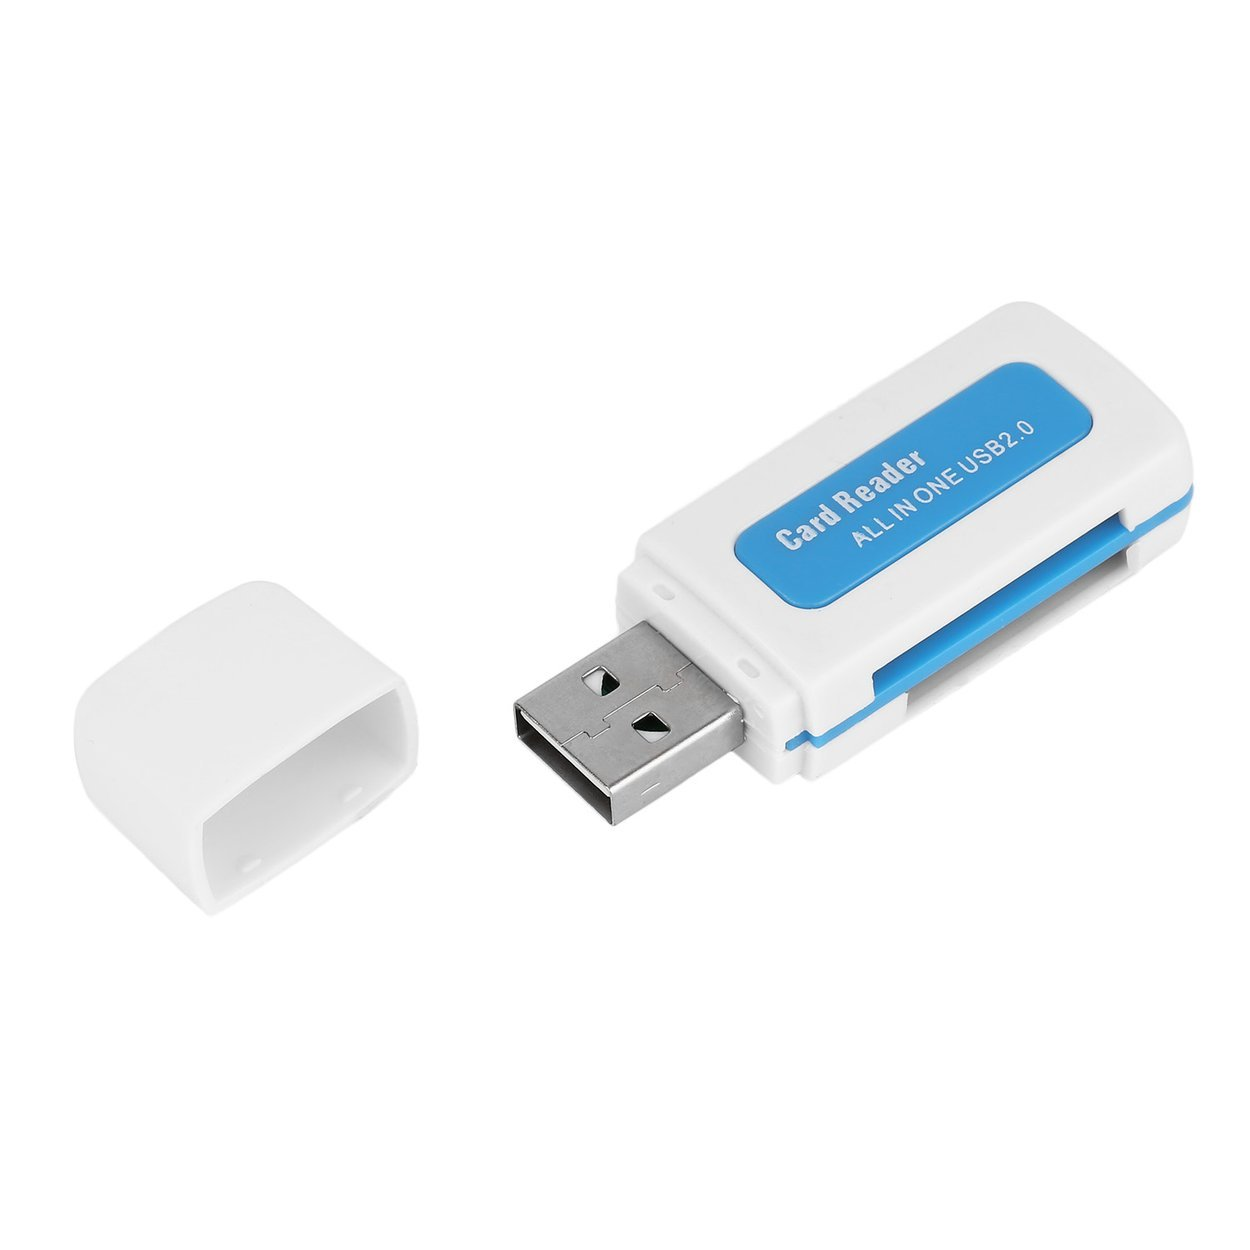 Protable USB 2.0 4 in 1 Memory Multi Card Reader for M2 for SD for SDHC DV Micro for Secure Digital Card TF Card